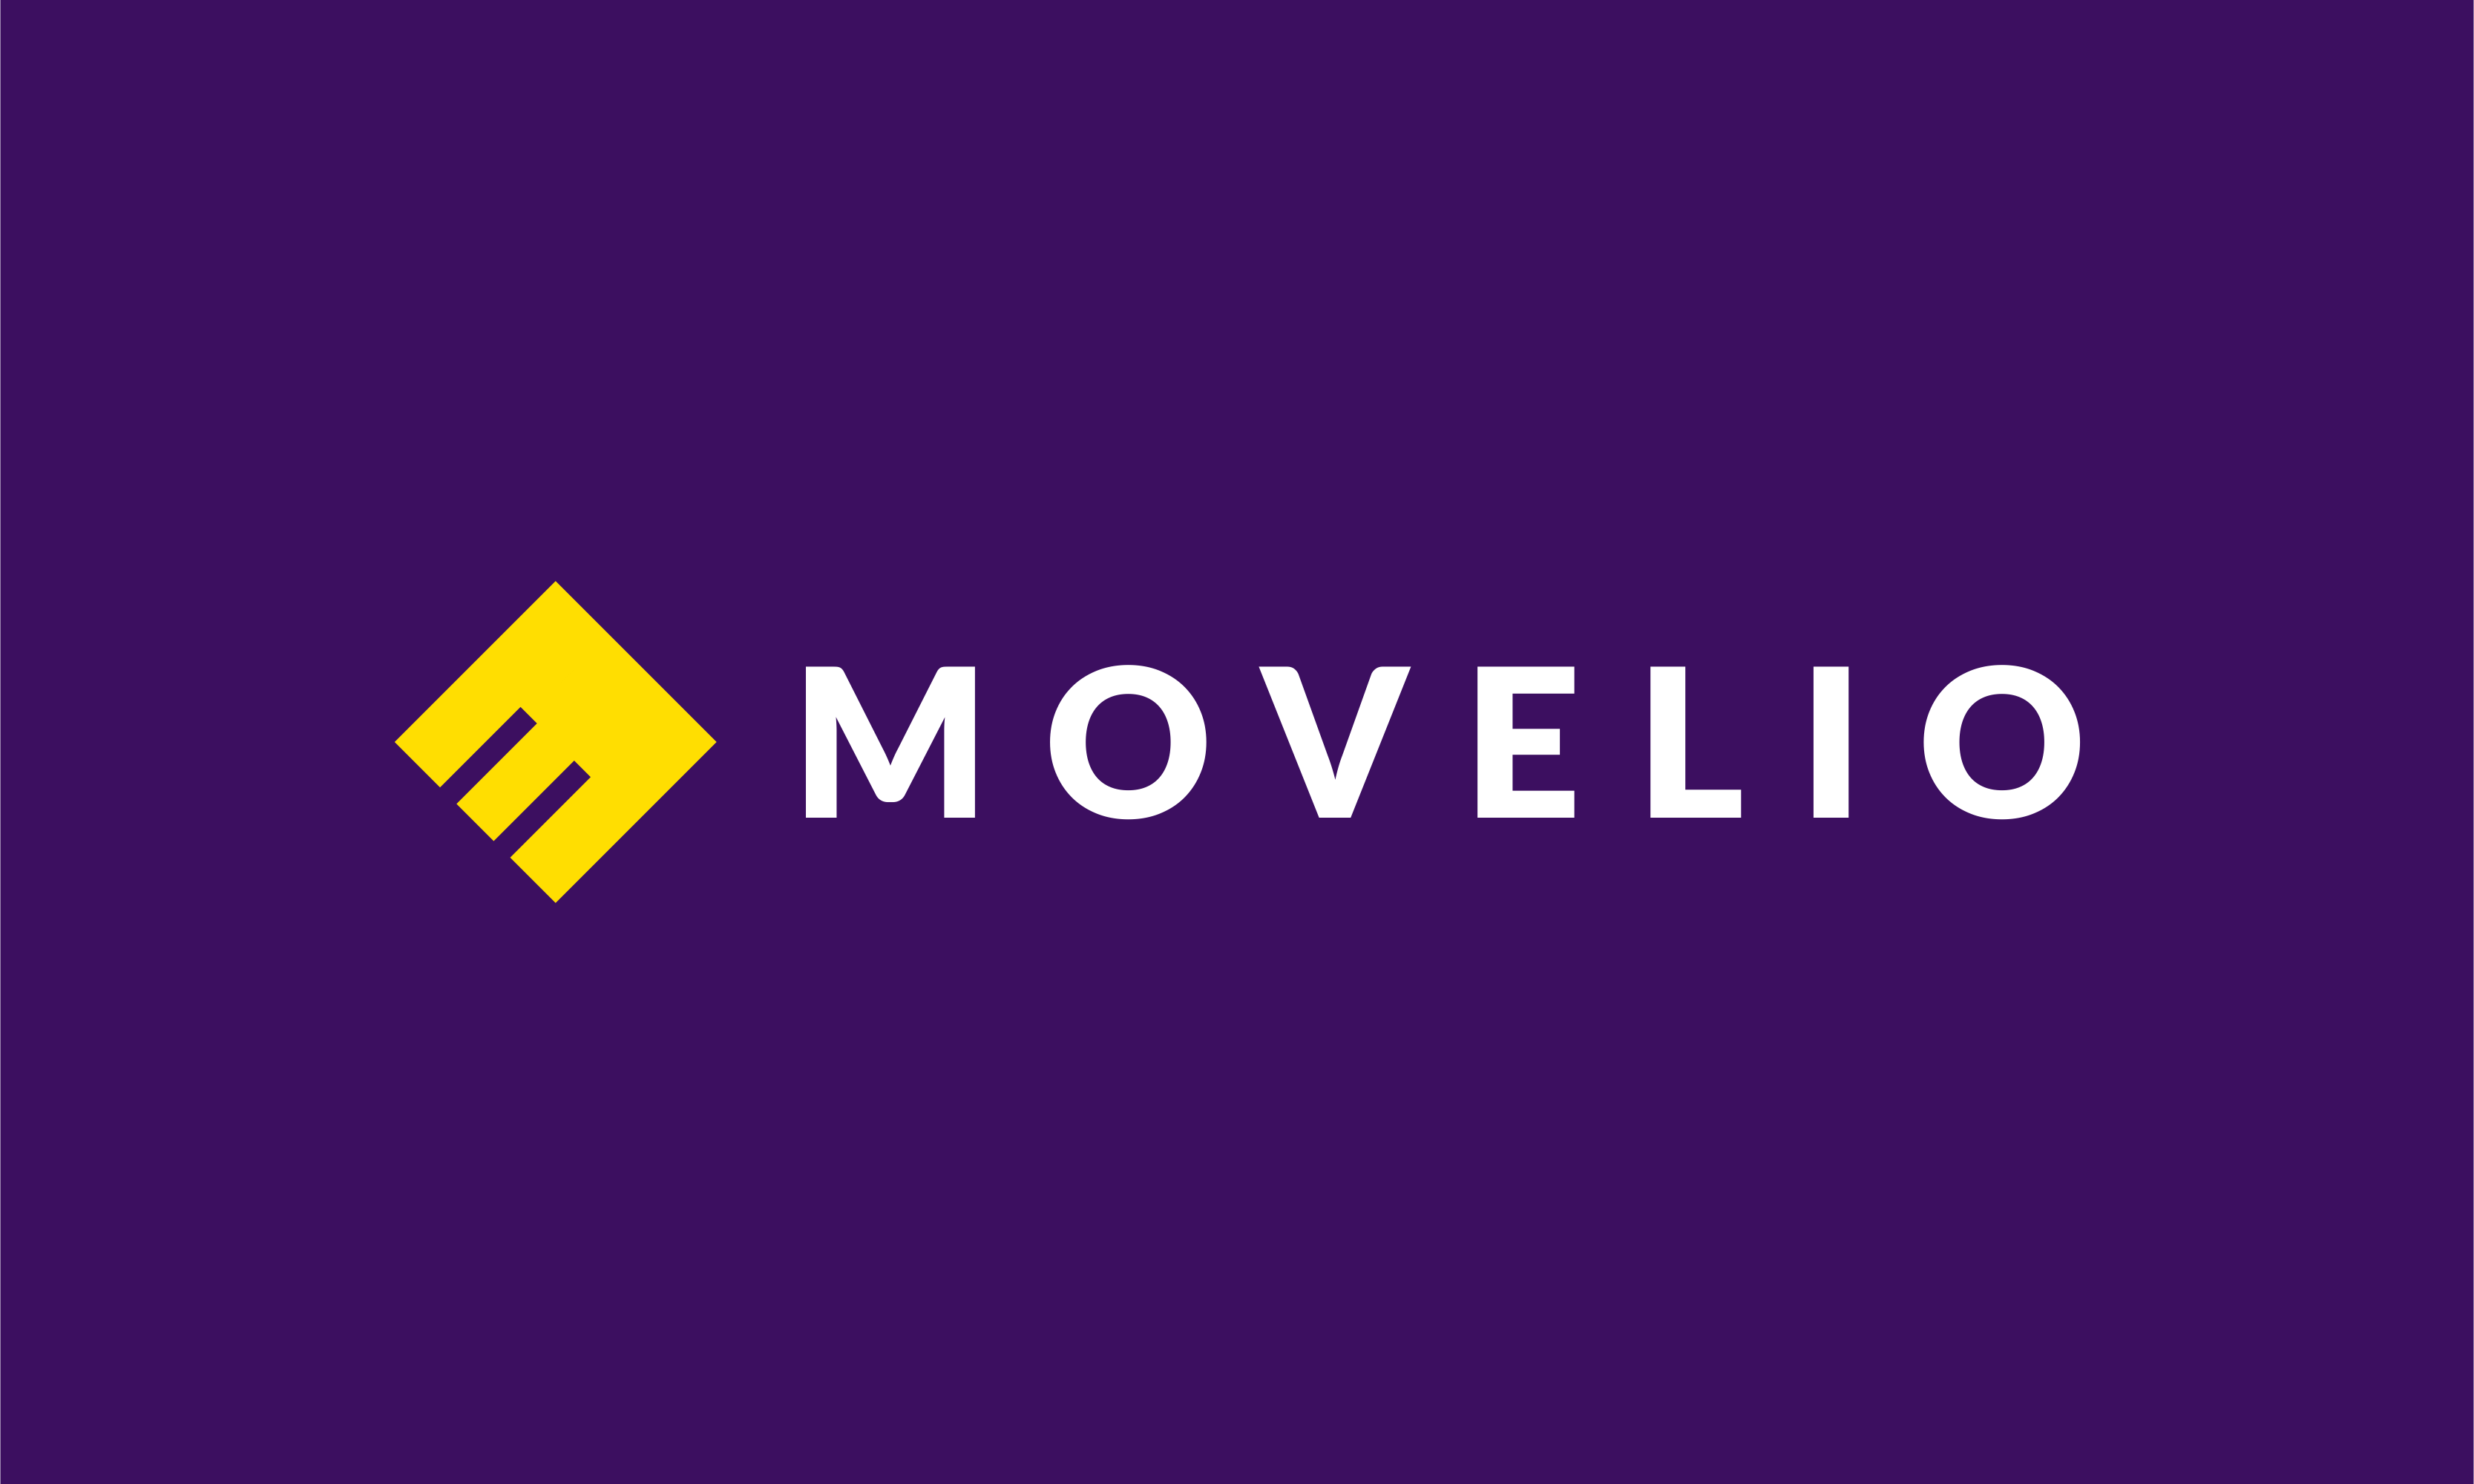 Movelio - Transport business name for sale